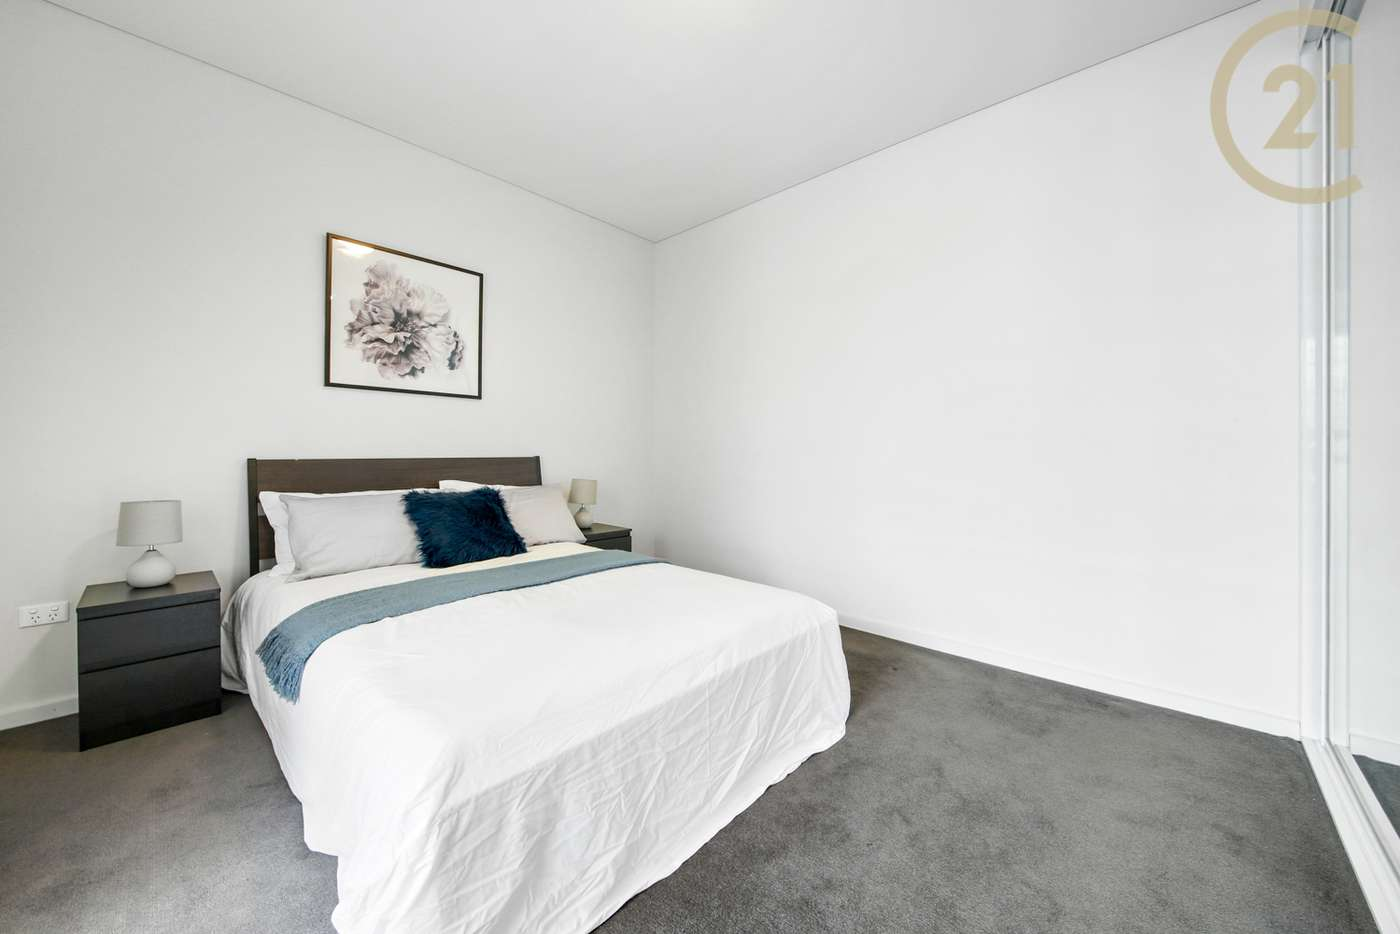 Sixth view of Homely apartment listing, 404/581 Gardeners Road, Mascot NSW 2020